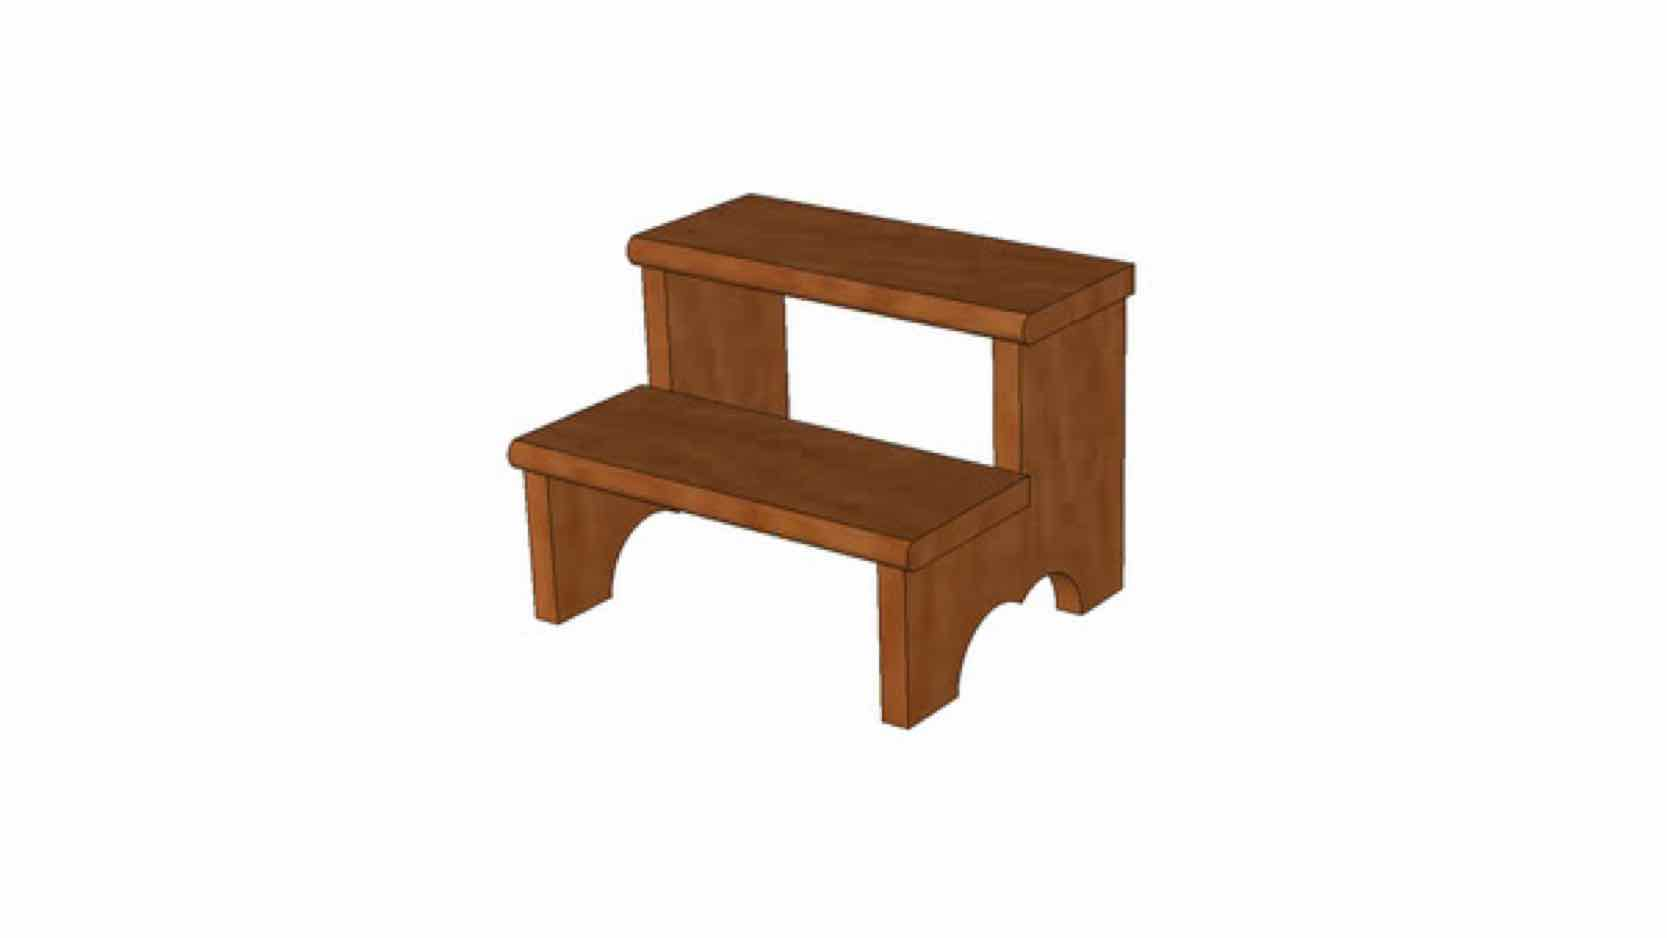 stools,step stools,sketchup,Google 3D,3-D warehouse,furniture,drawings,free woodworking plans,projects,do it yourself,woodworkers